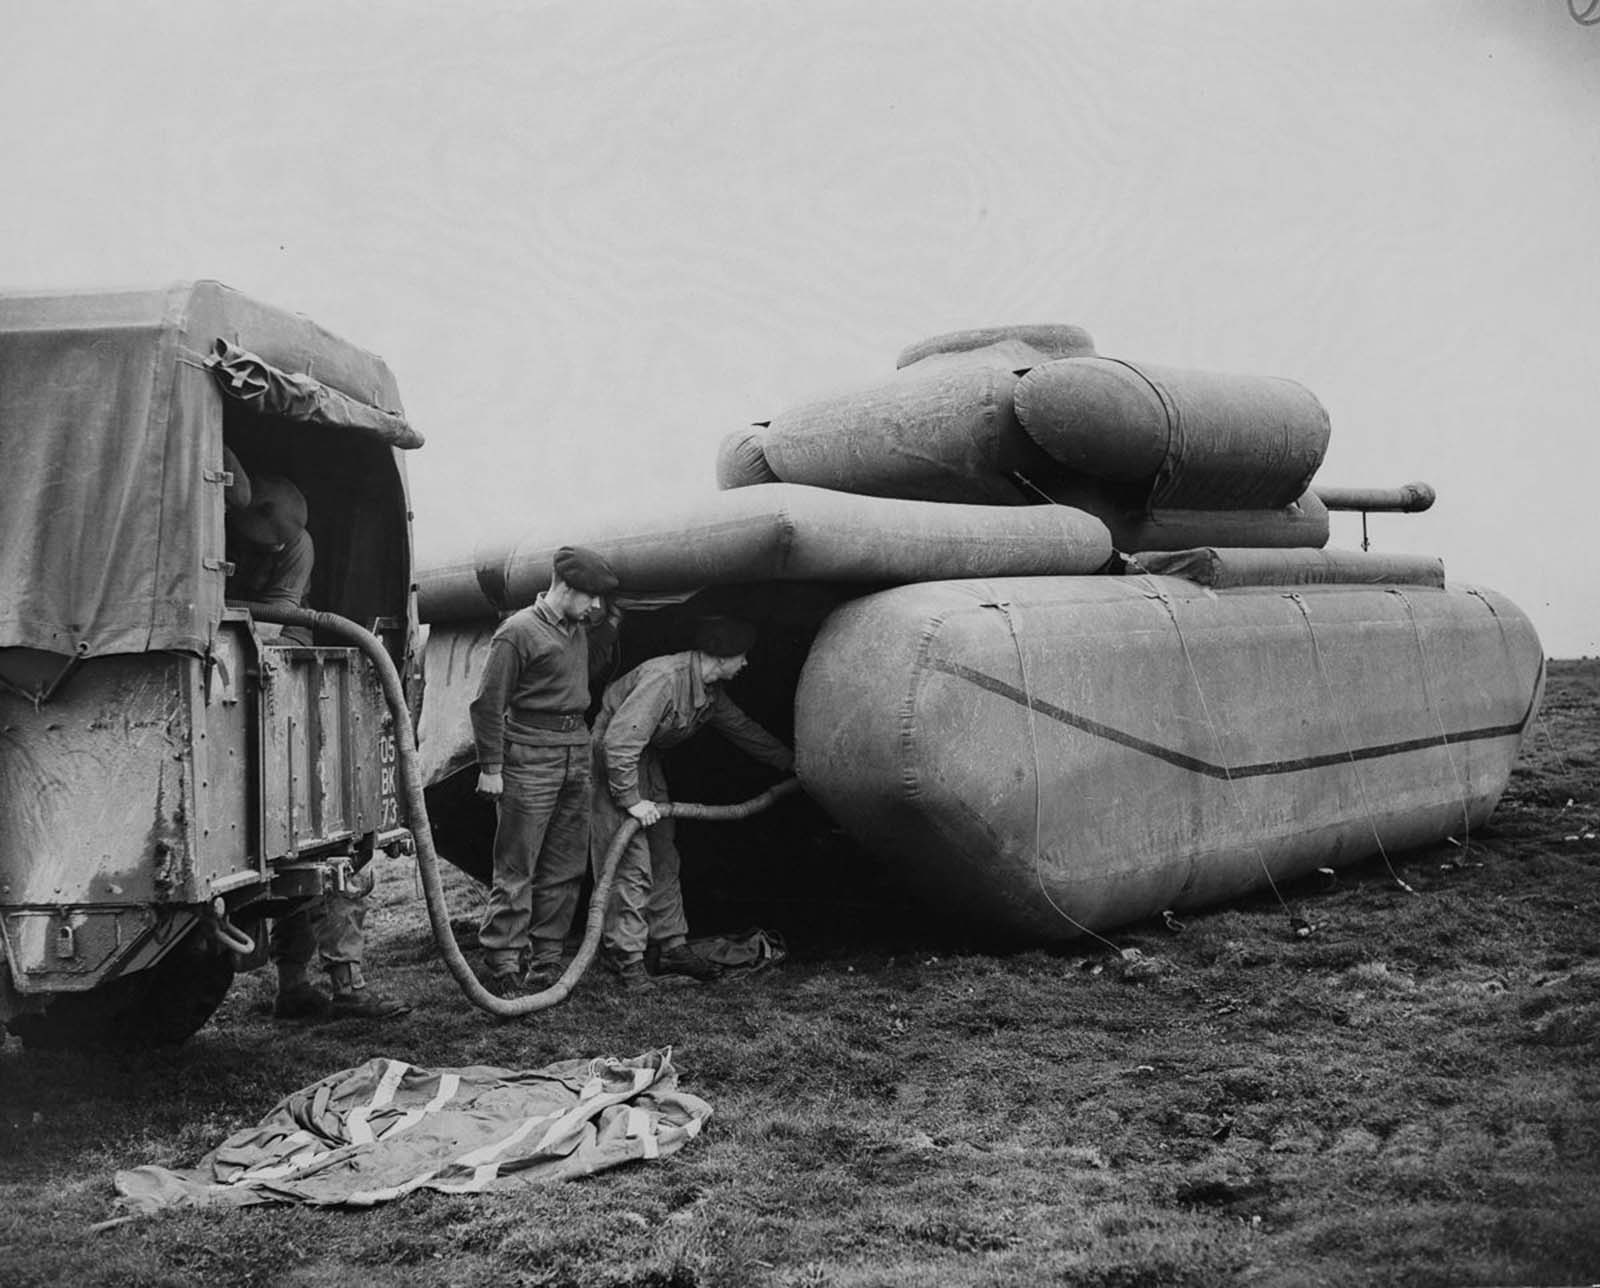 British troops inflate a rubber dummy tank. 1940.